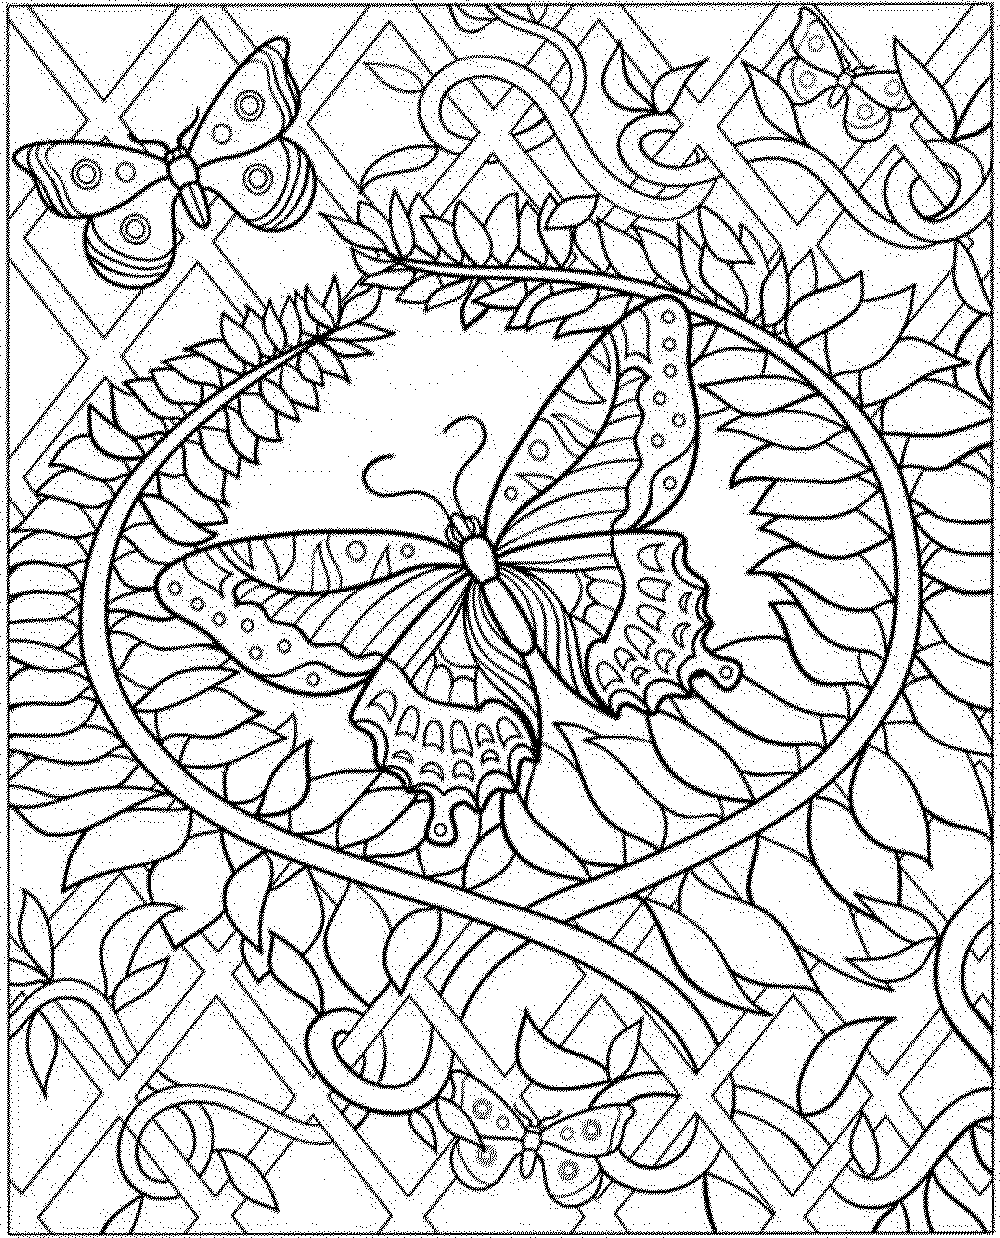 intricate coloring pages intricate coloring pages for kids at getcoloringscom pages coloring intricate